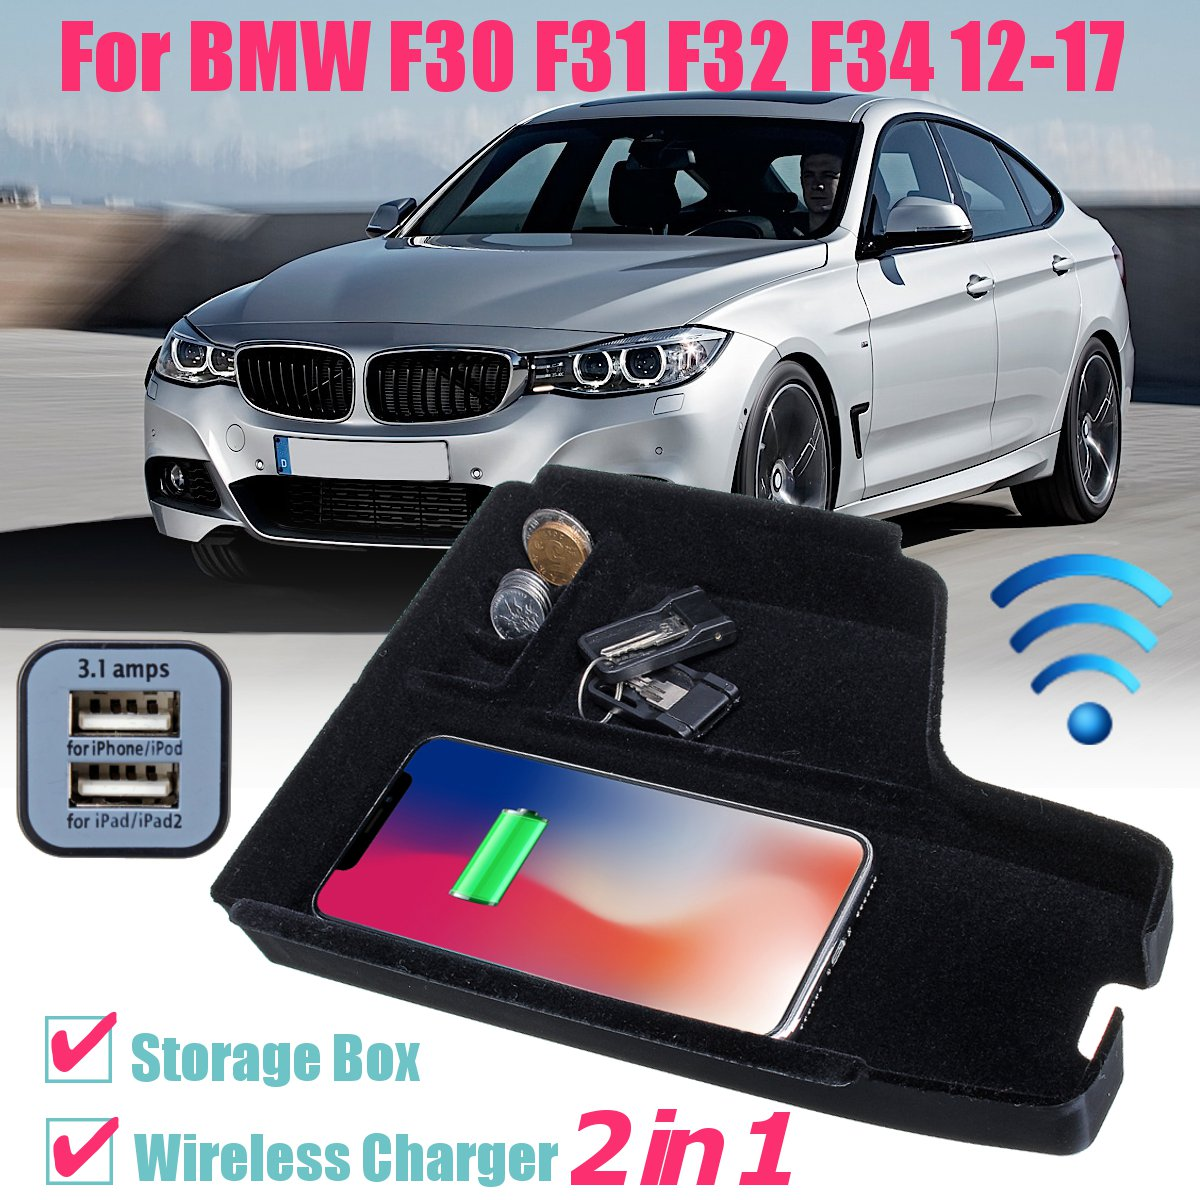 Phone Wireless Charging Car Central Armrest Console Storage Box for BMW F30  F31 F32 F34 LHD 12-17